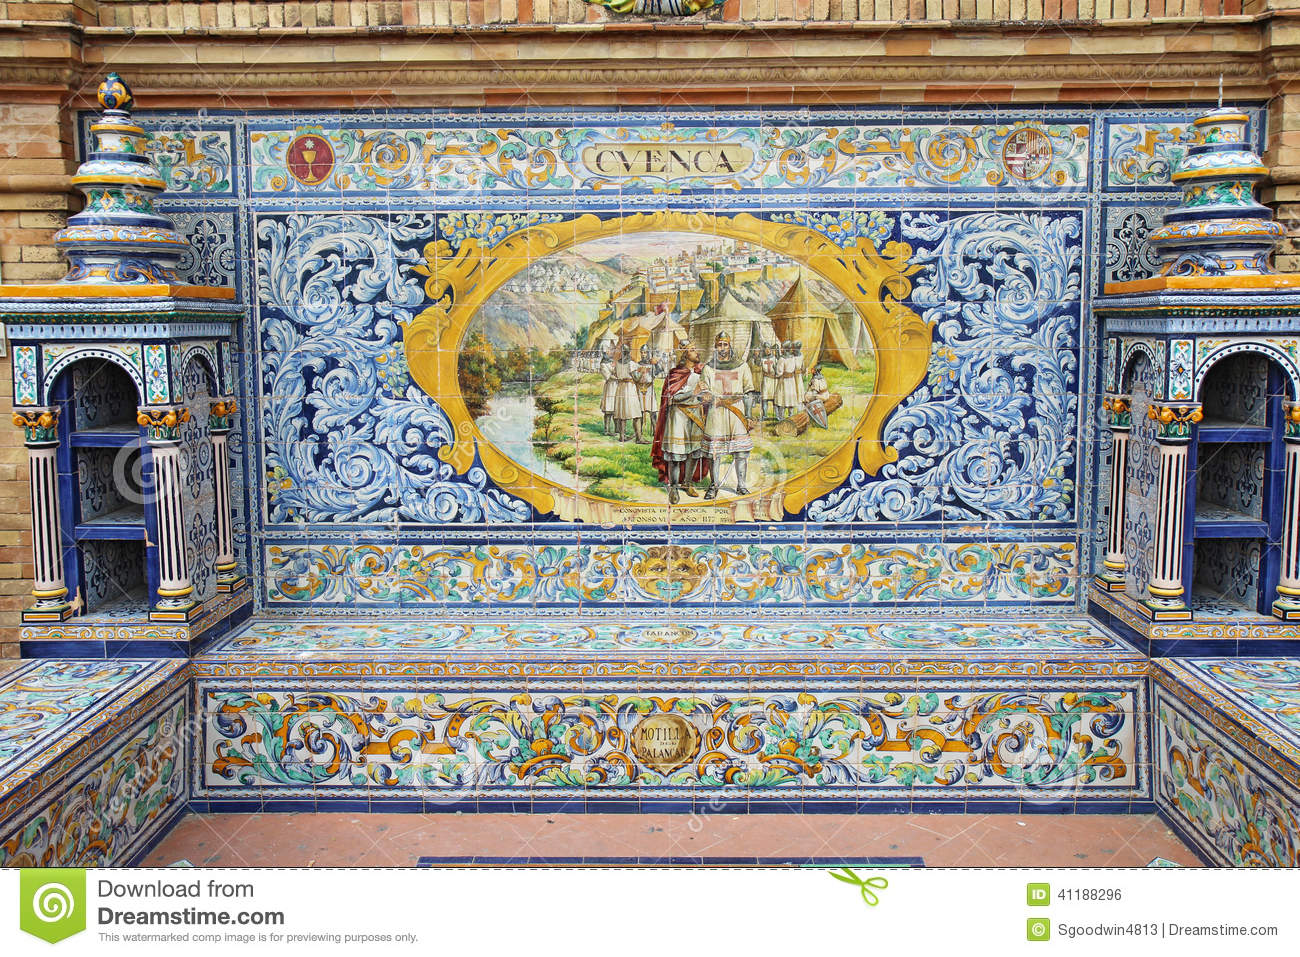 Ceramic tile mural at plaza de espana in seville spain editorial ceramic tile mural at plaza de espana in seville spain doublecrazyfo Images